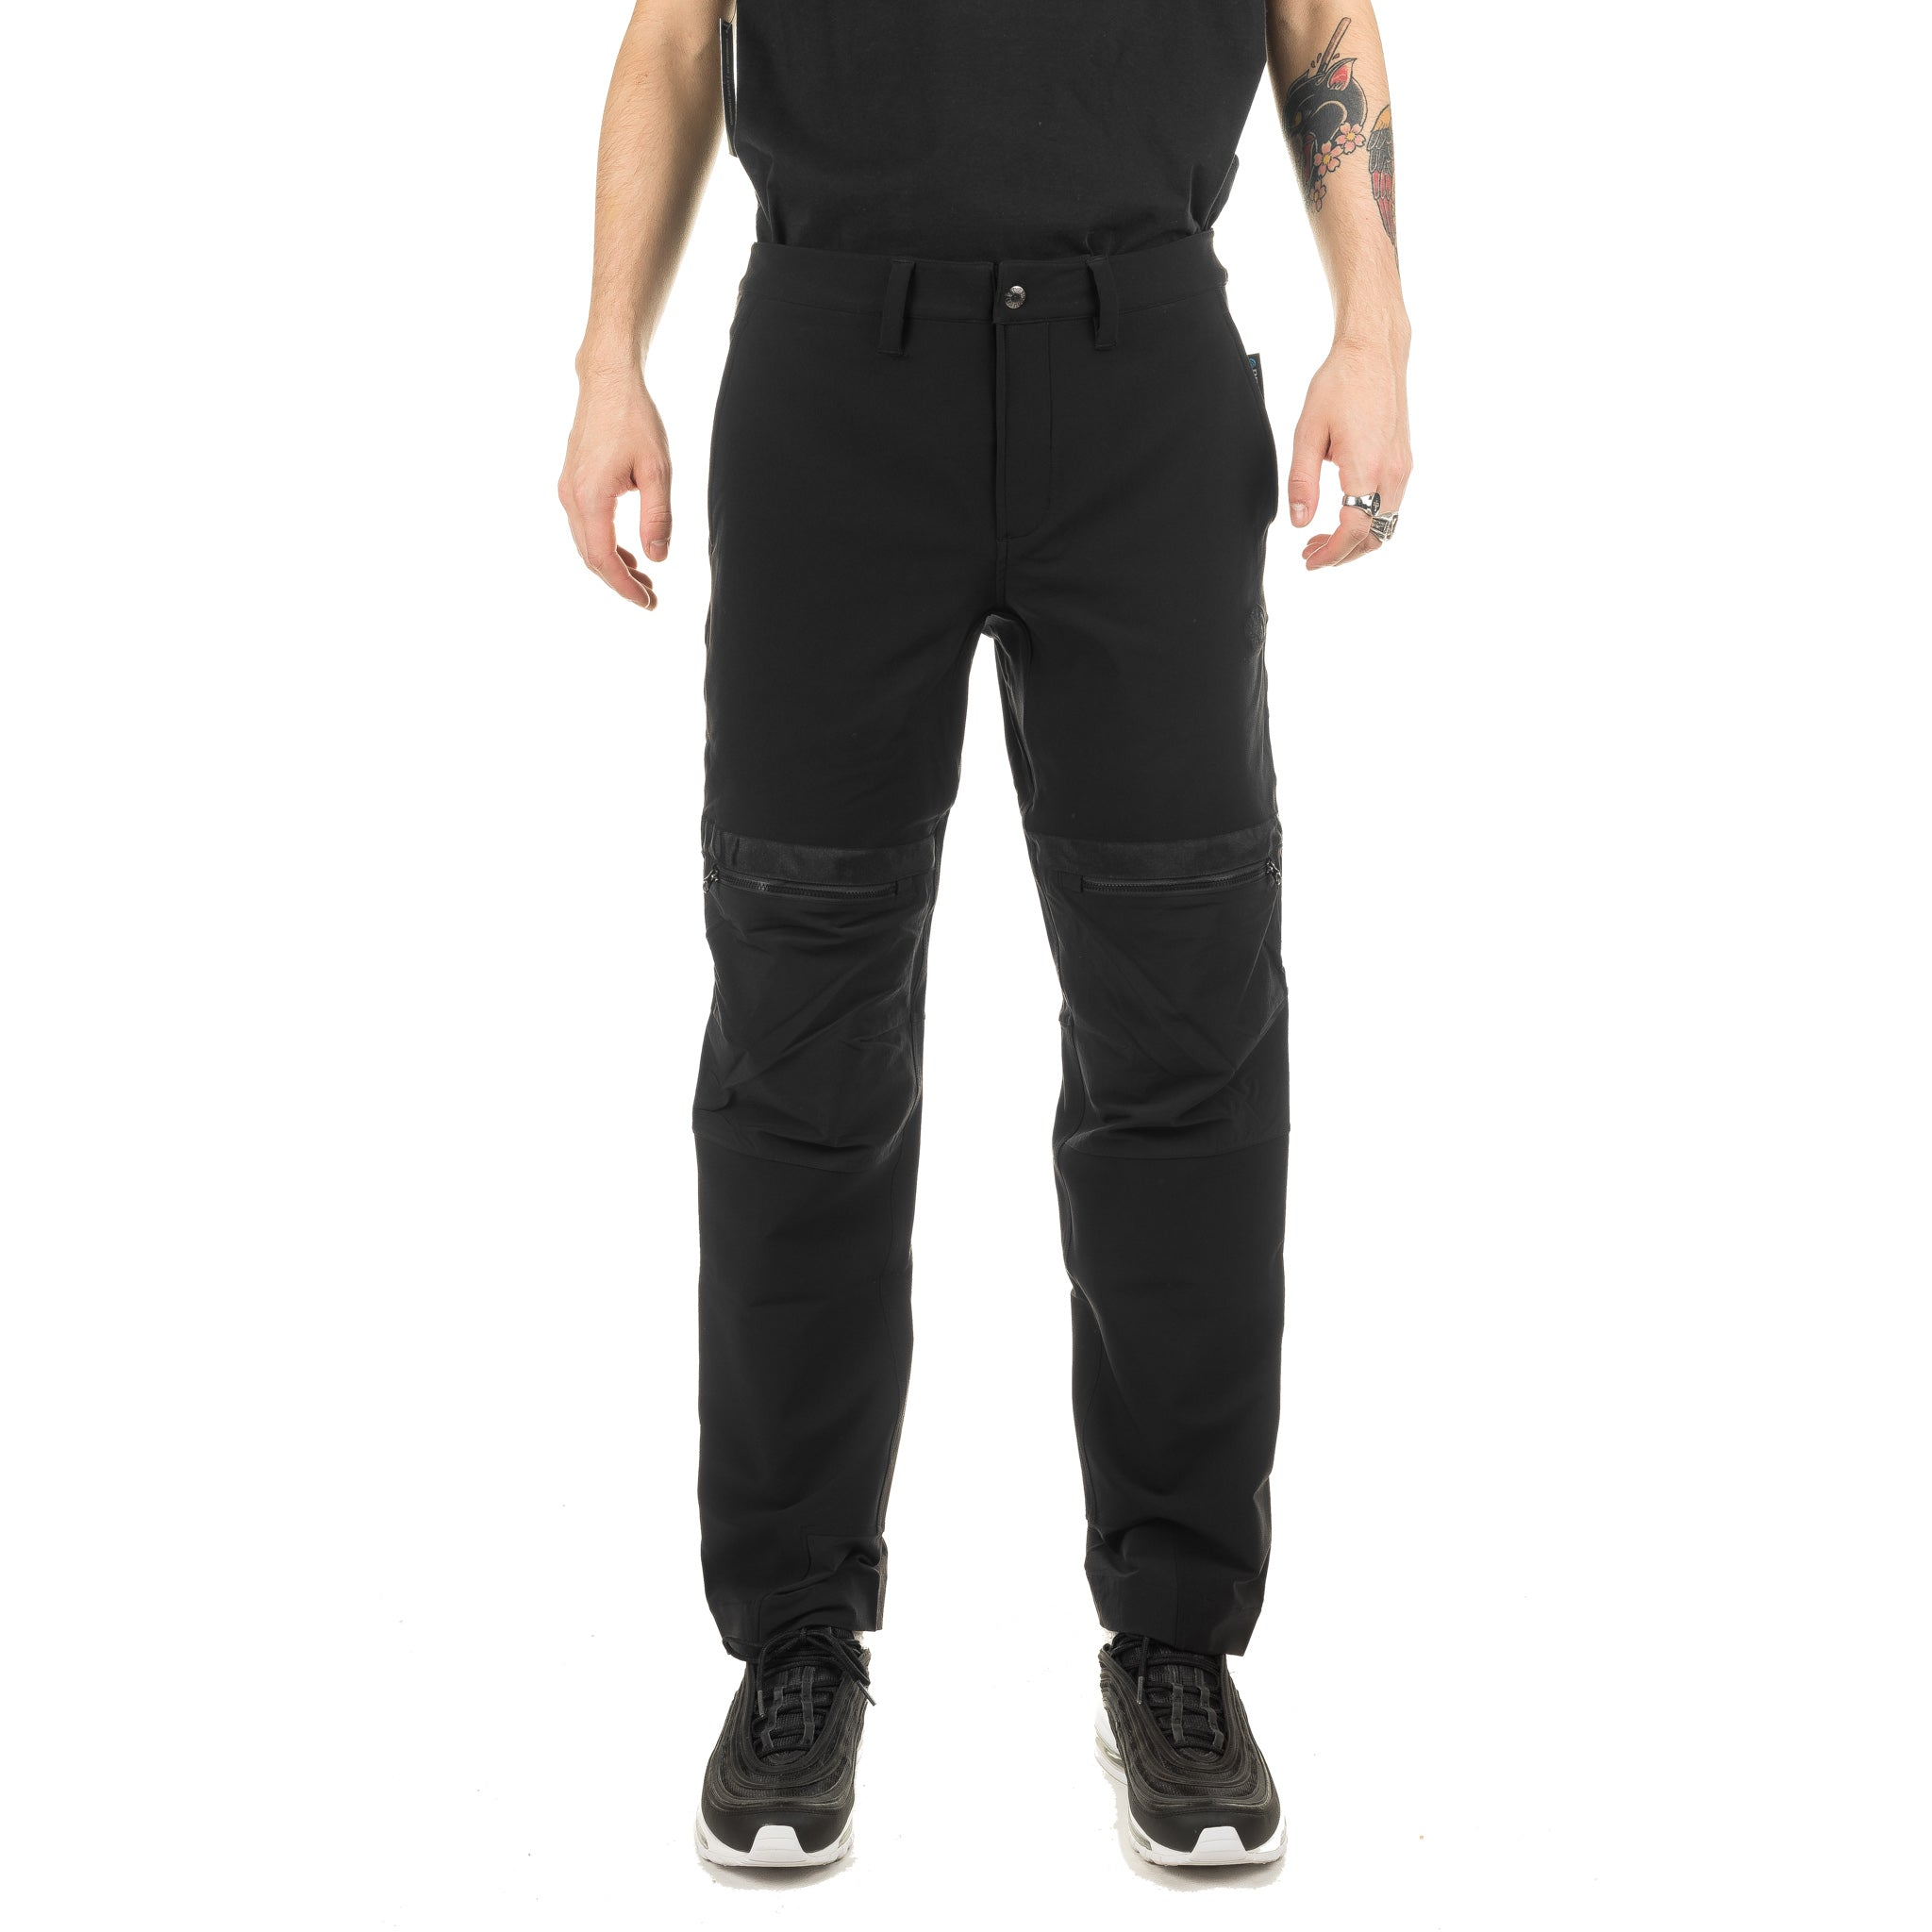 TNF Black Series City R1 SB Pants NF0A46DCJK3 Black